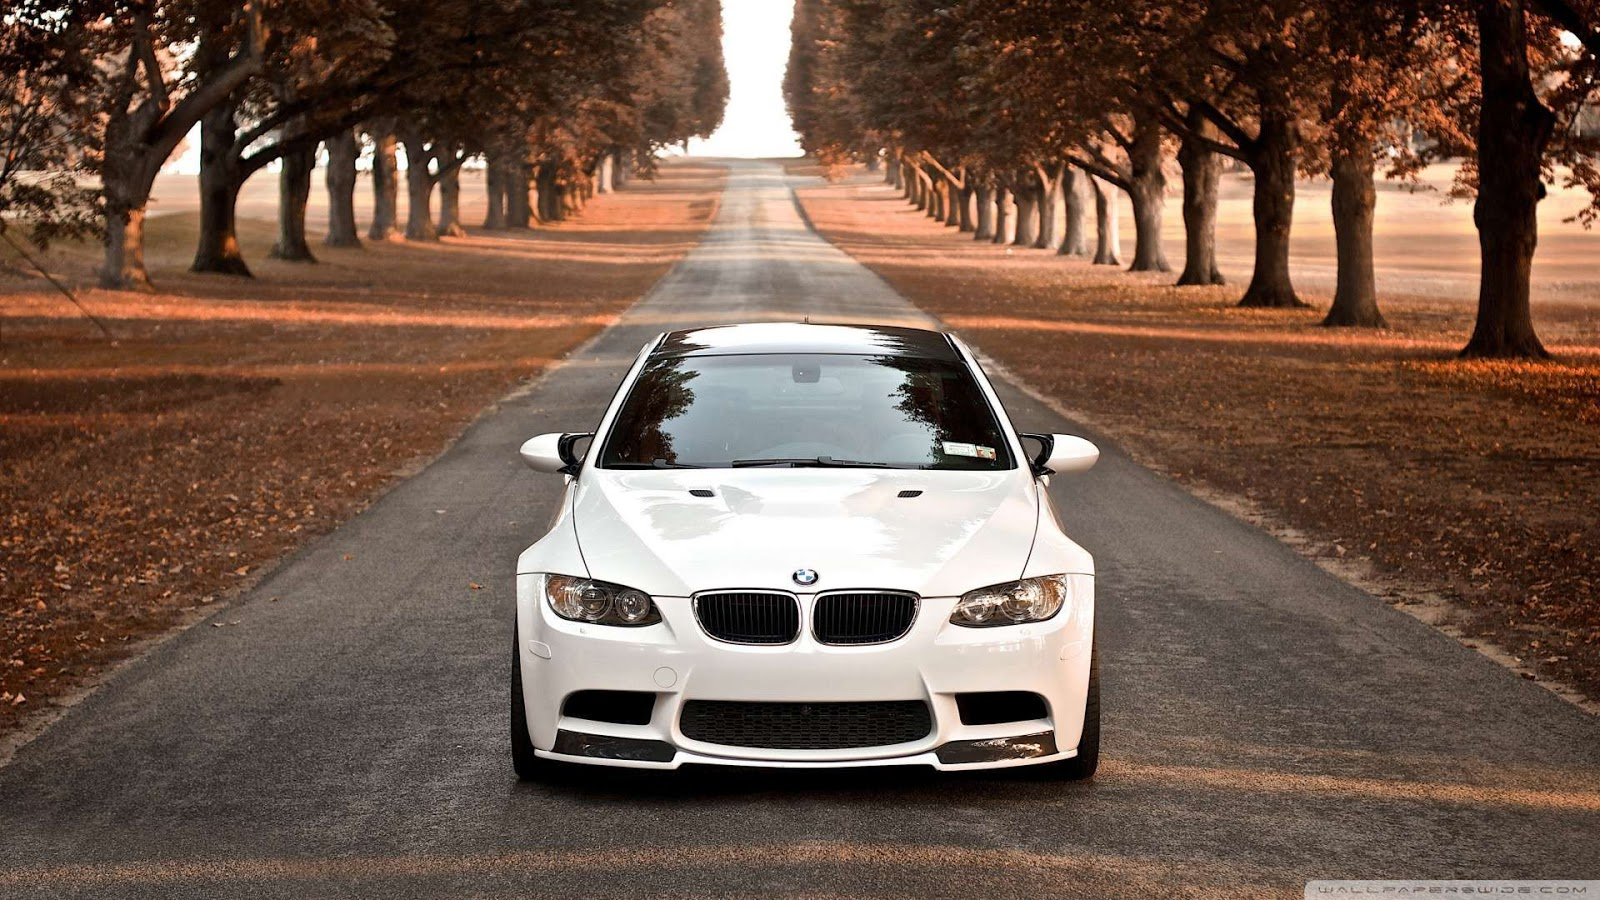 Group Of Bmw Wallpaper 1080P